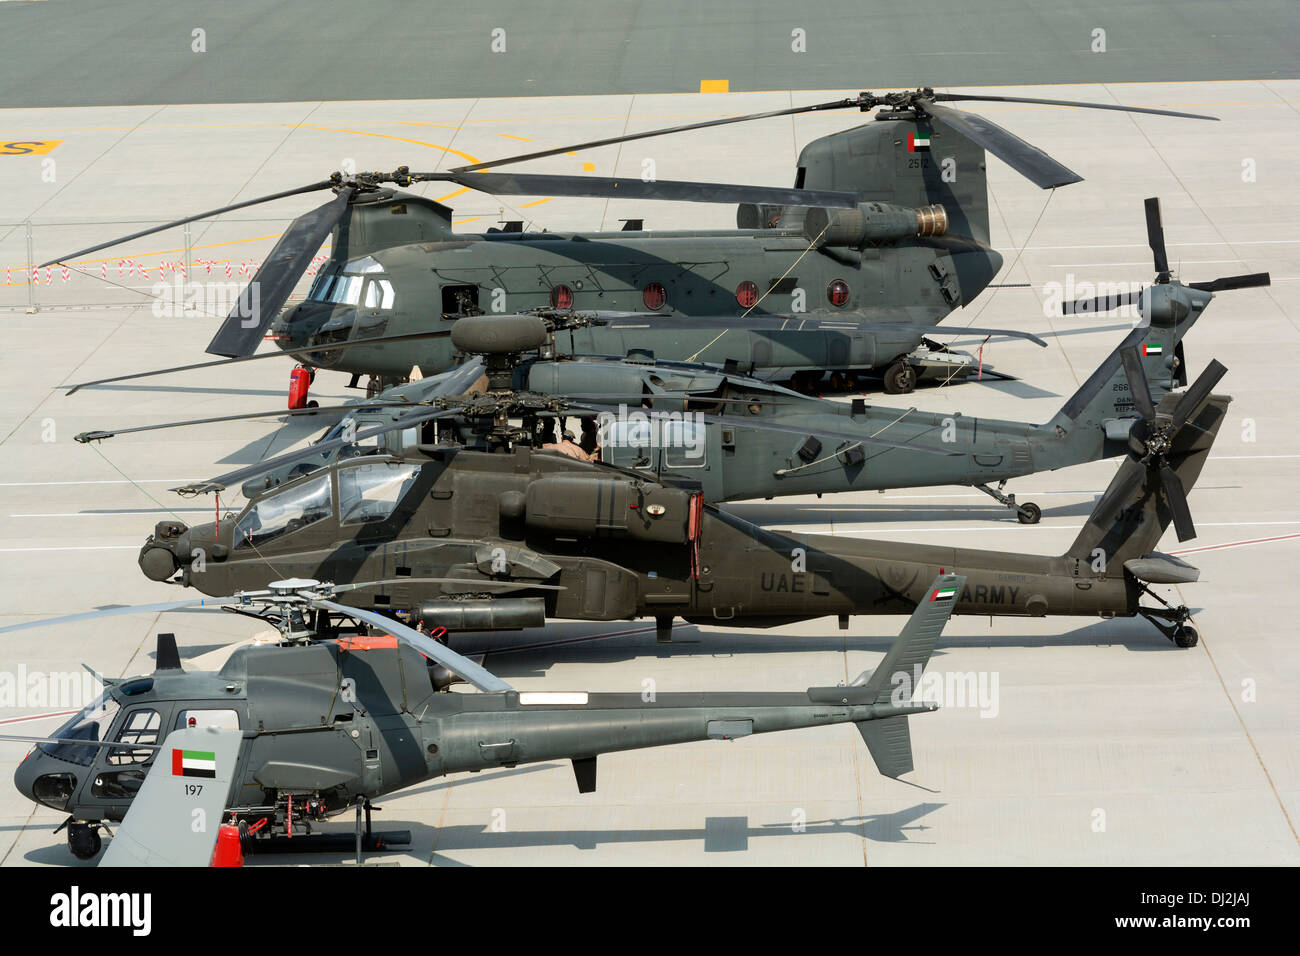 Military helicopters on apron at Al Maktoum International airport during Dubai Airshow 2013 in United Arab Emirates - Stock Image